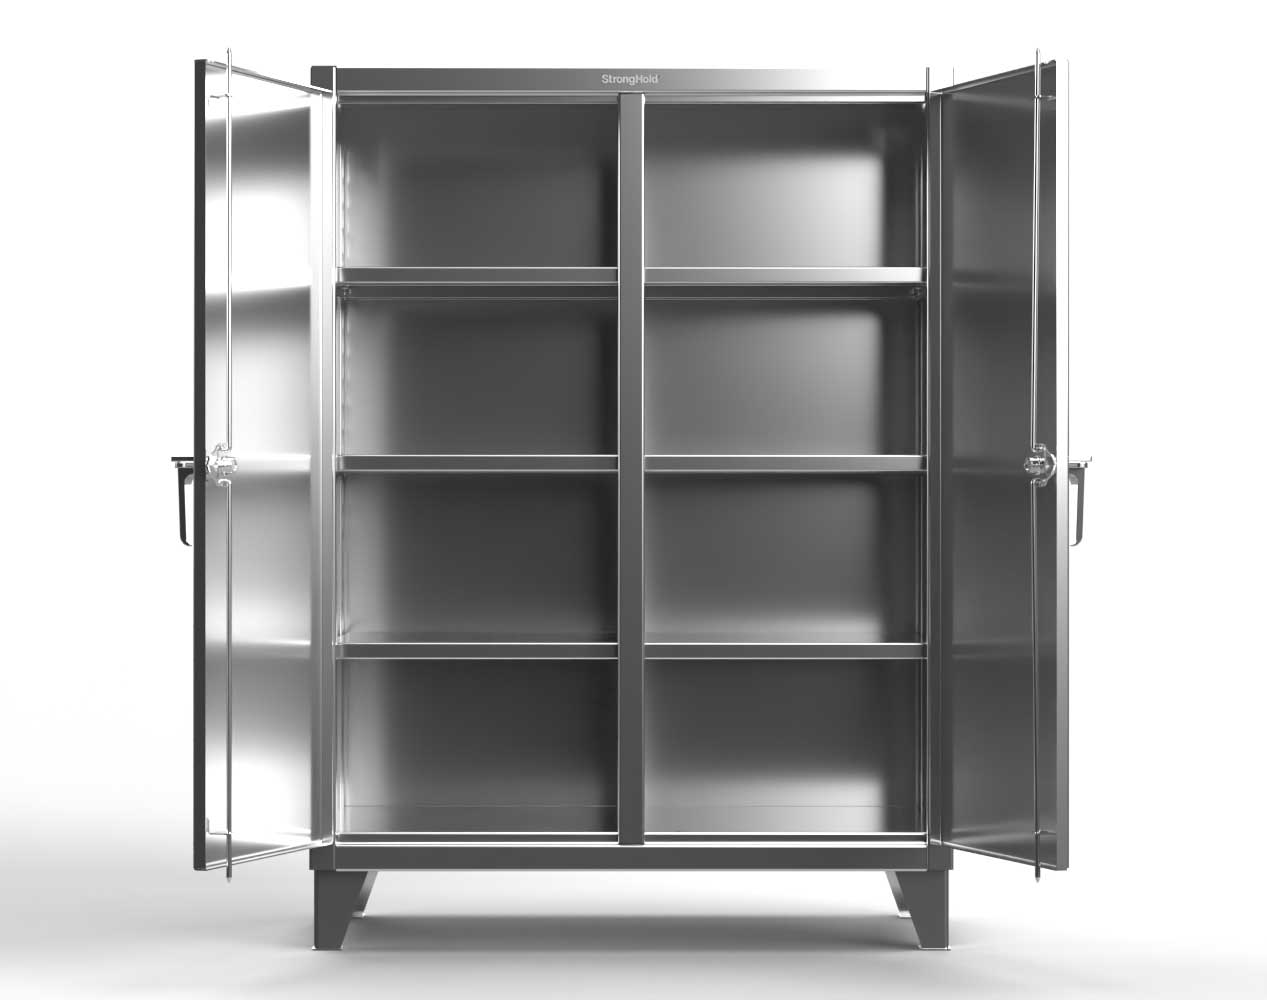 Extra Heavy Duty 12 GA Stainless Steel Double Shift Cabinet with 6 Shelves – 72 In. W x 24 In. D x 66 In. H